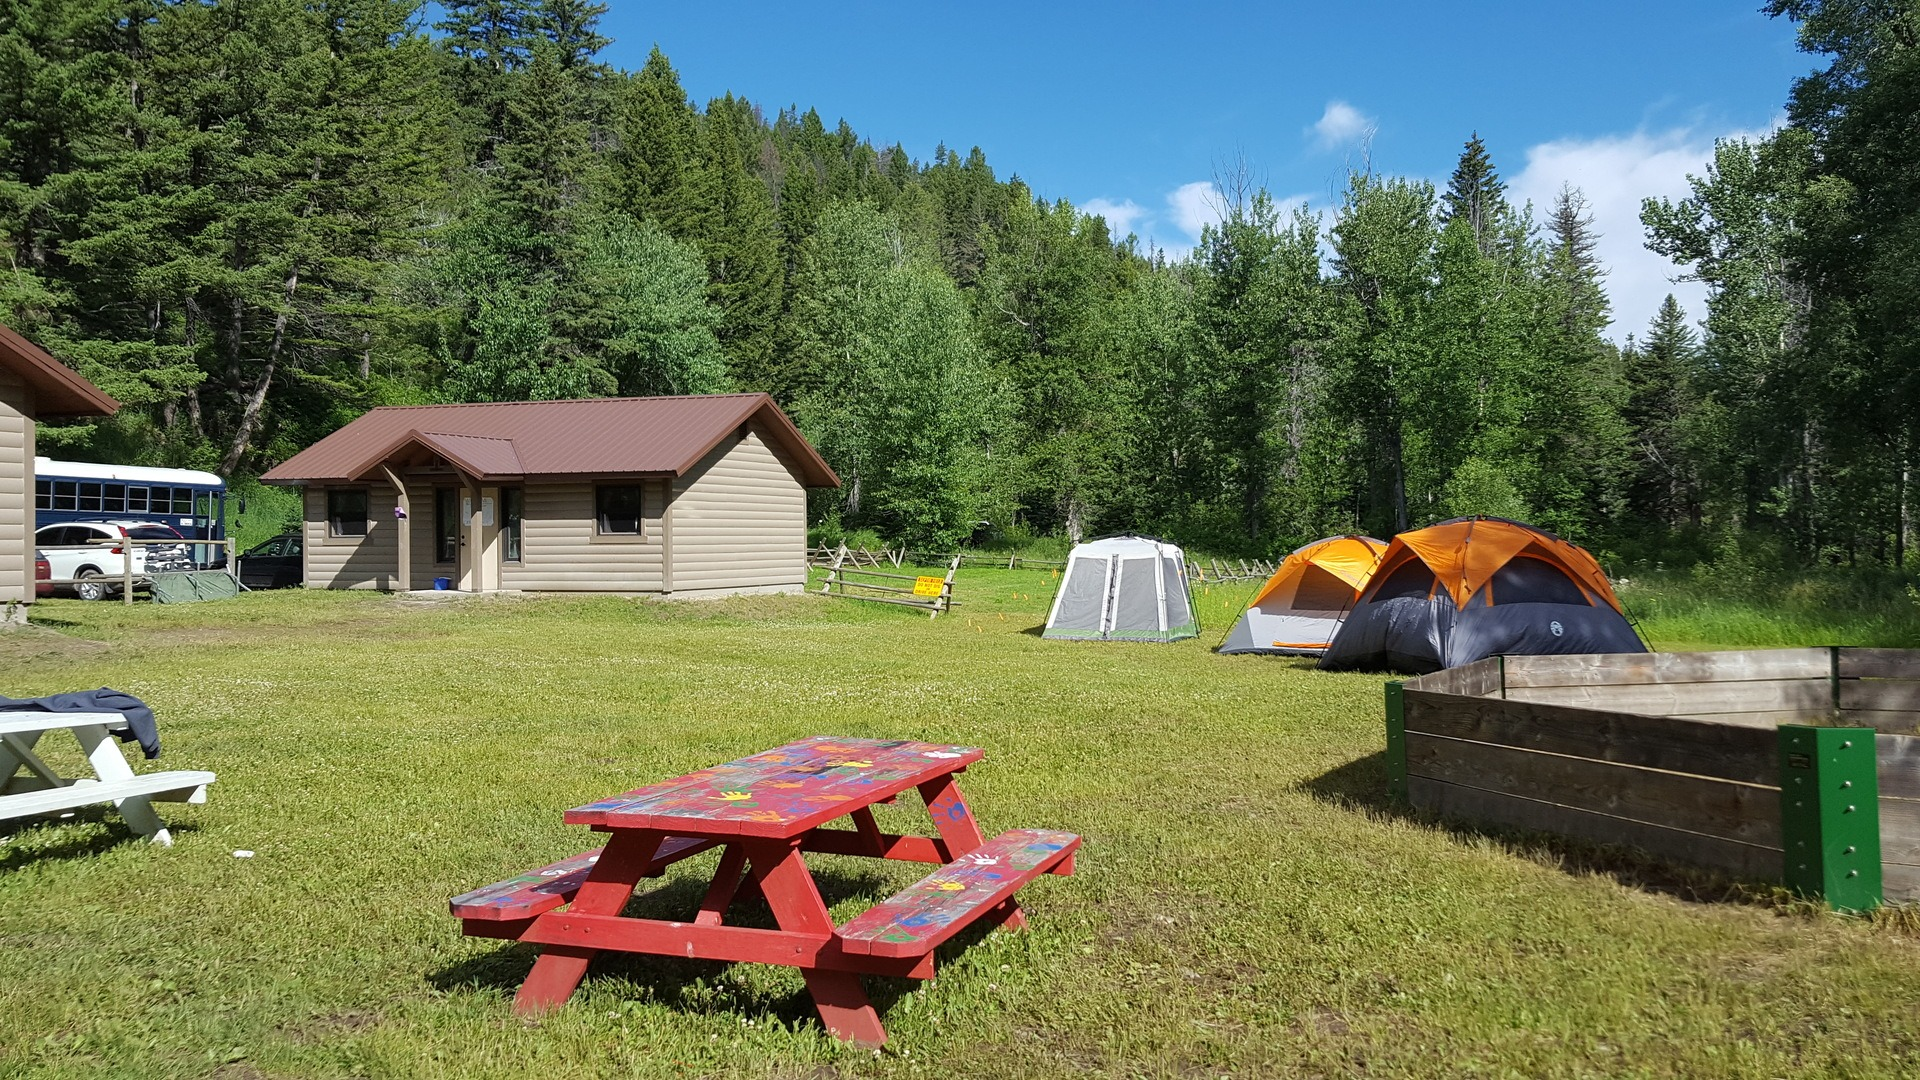 22 - Cabins,Tents and Picnic Tables